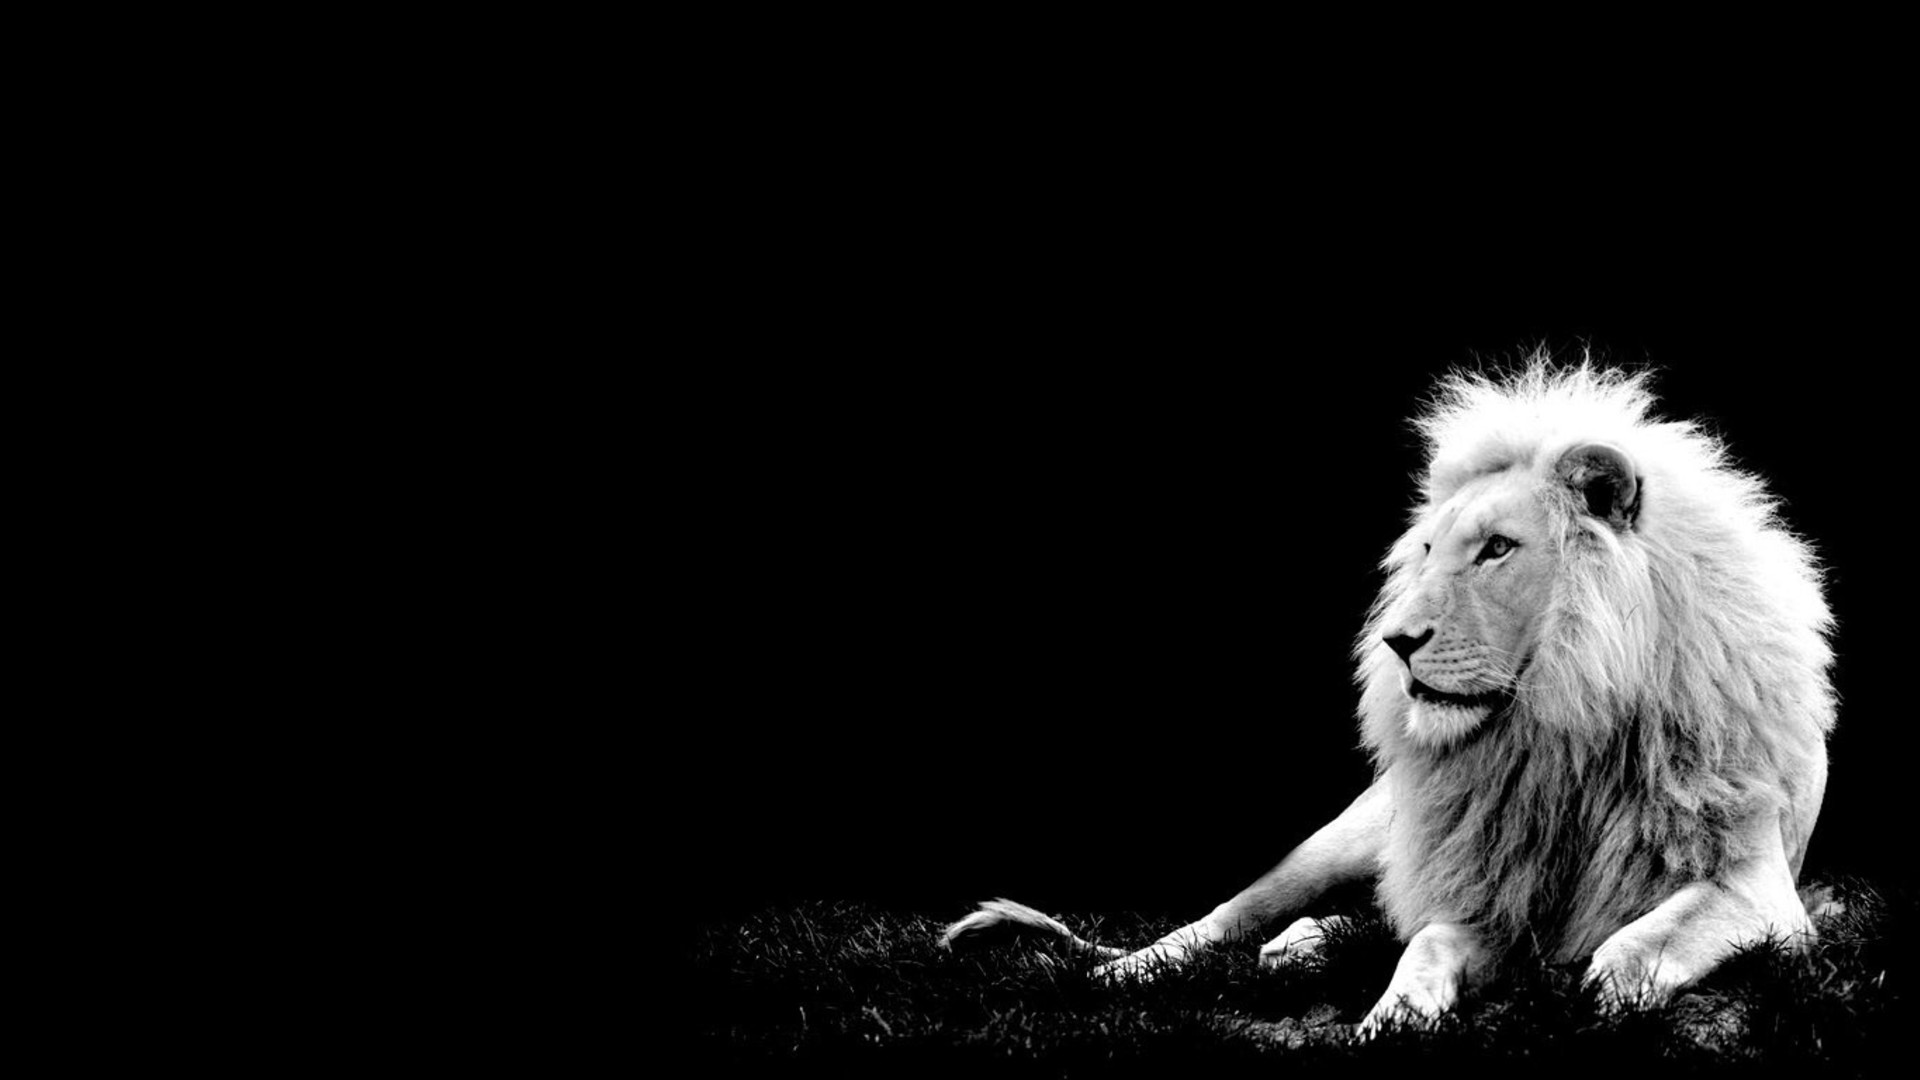 10 New Baby Animals Wallpaper Hd Full Hd 1920 1080 For Pc: Black And White Wallpaper